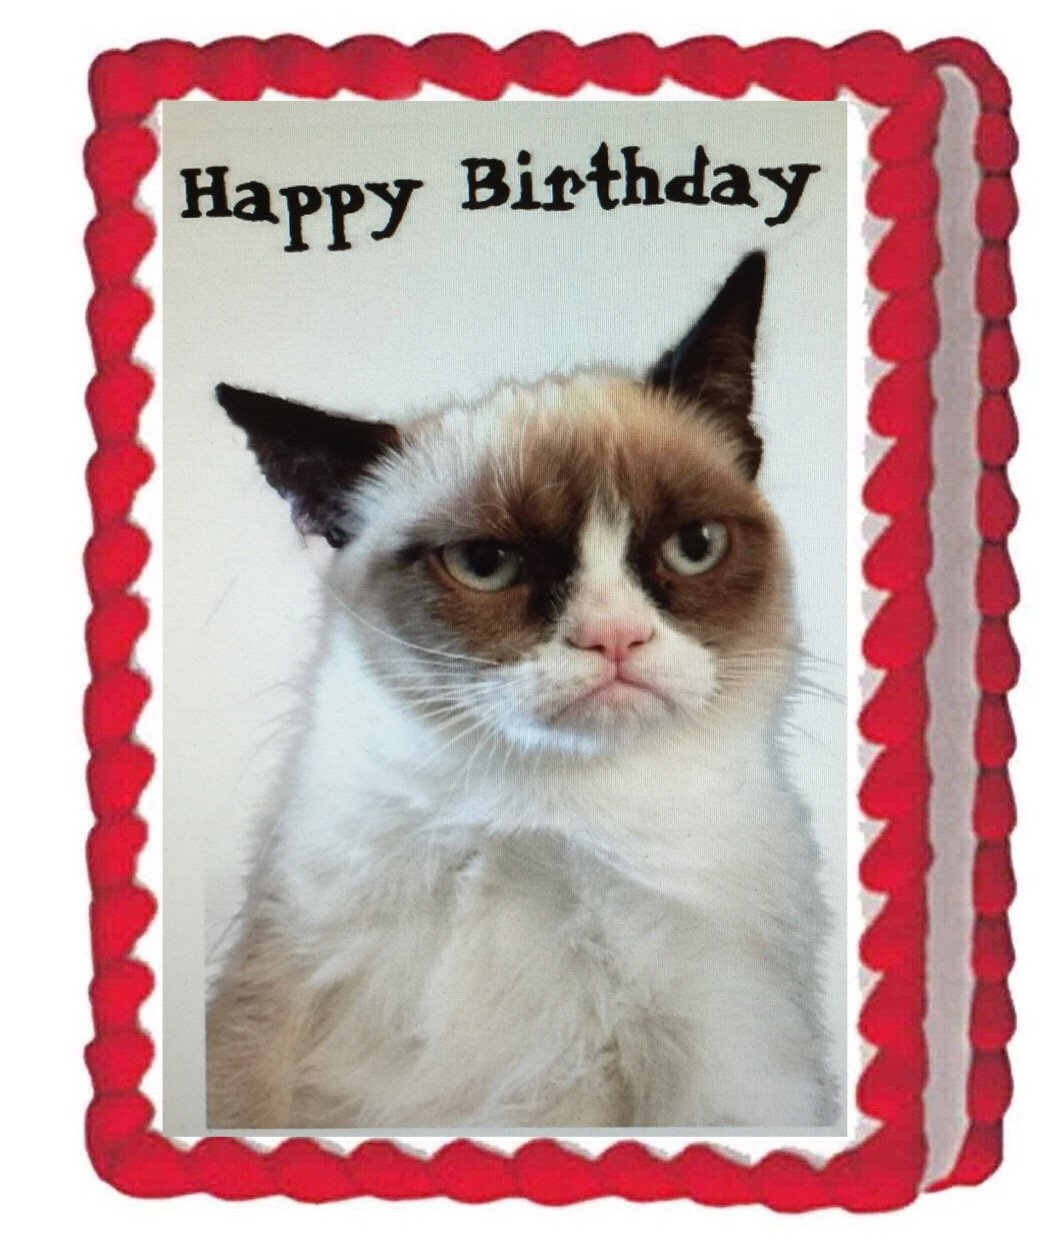 Tremendous Grumpy Cat Edible Cake Image Topper 1 4 Sheet Decoration Birthday Funny Birthday Cards Online Inifofree Goldxyz